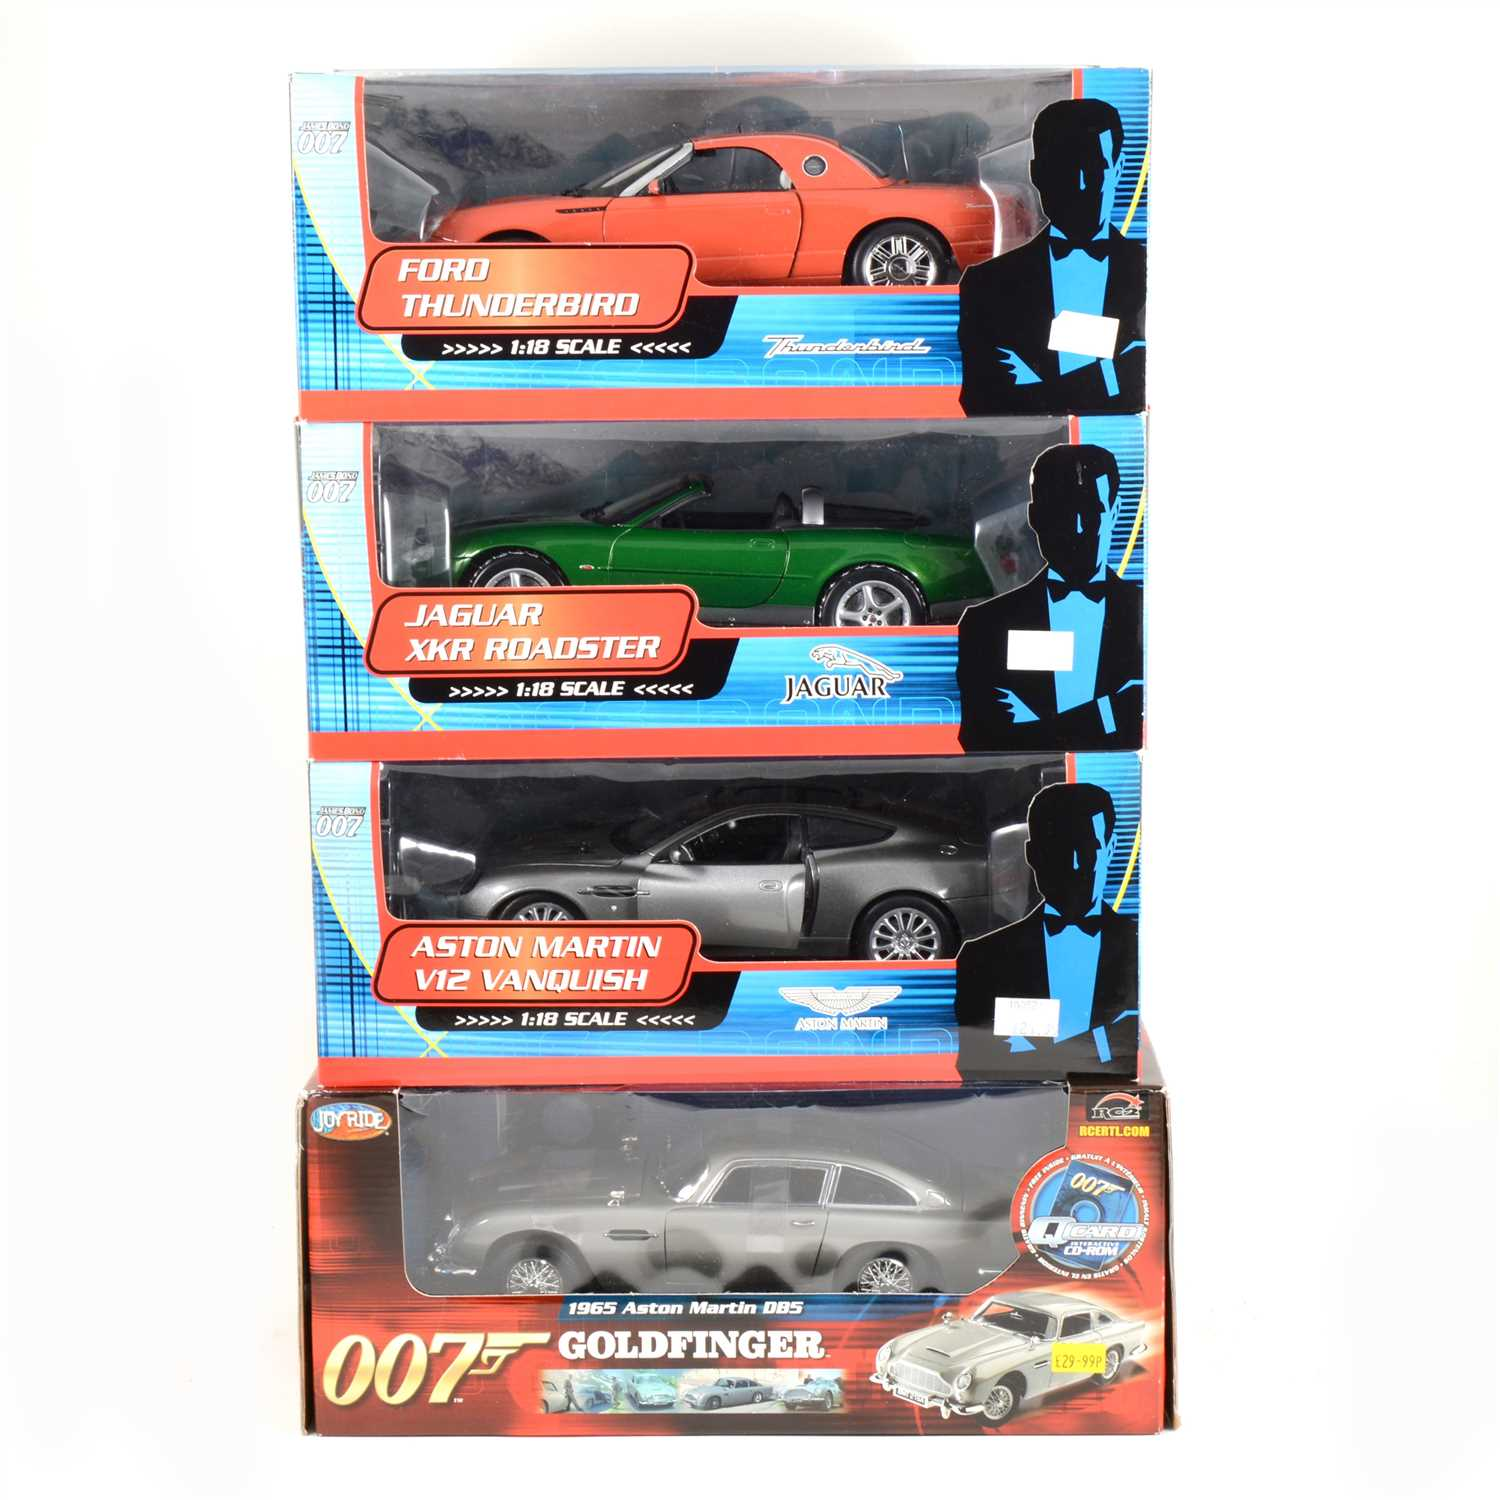 Lot 247 Four 1 18 Scale 007 James Bond Model Cars By